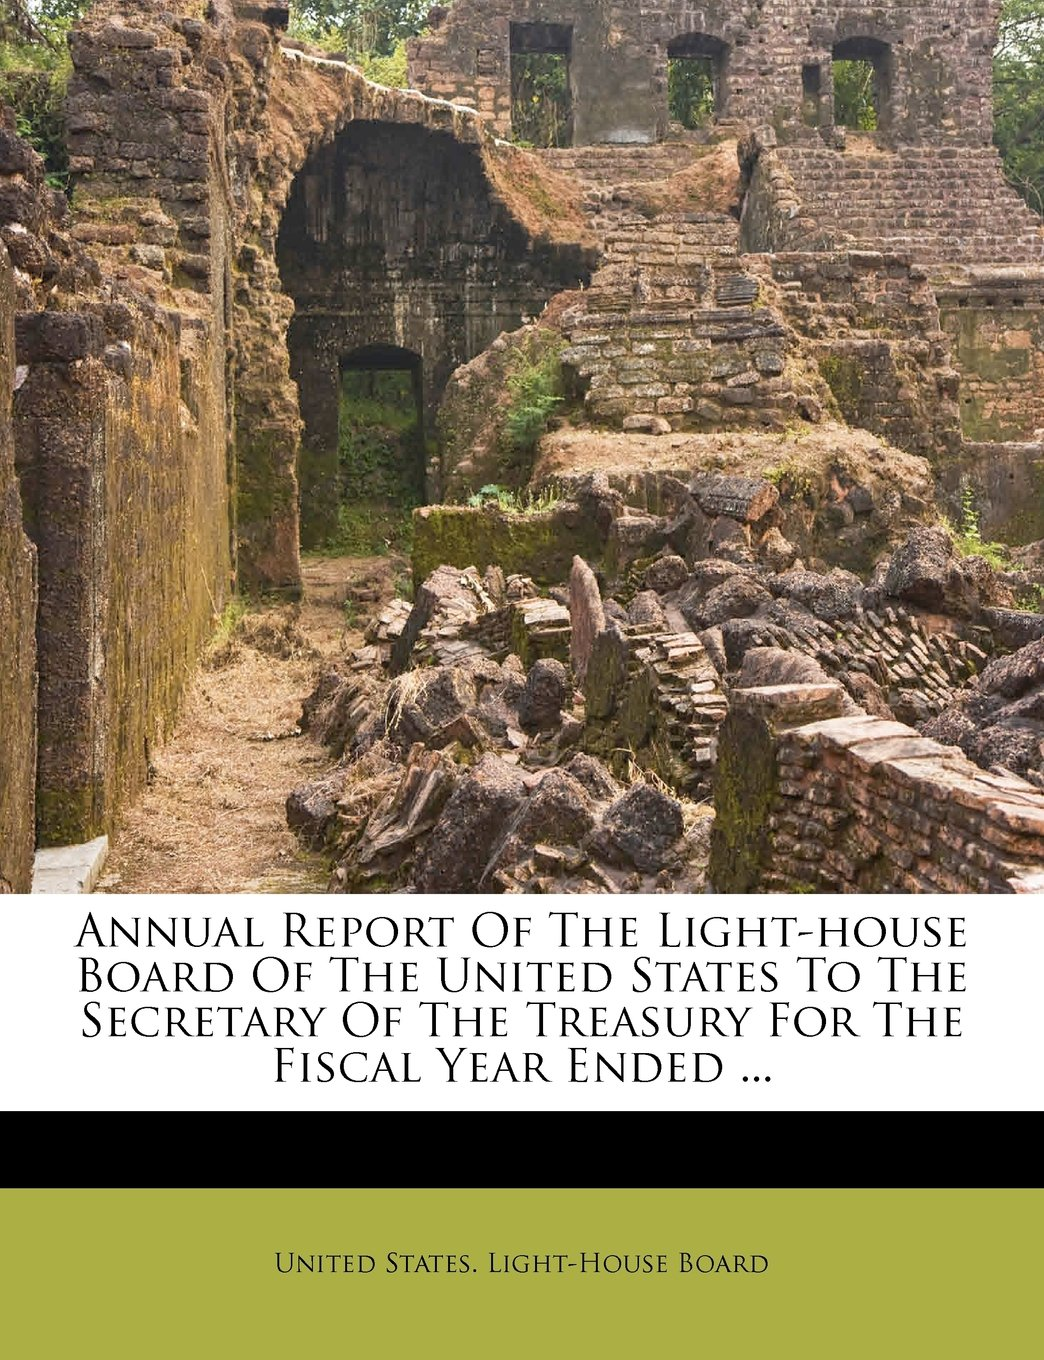 Annual Report Of The Light-house Board Of The United States To The Secretary Of The Treasury For The Fiscal Year Ended ... pdf